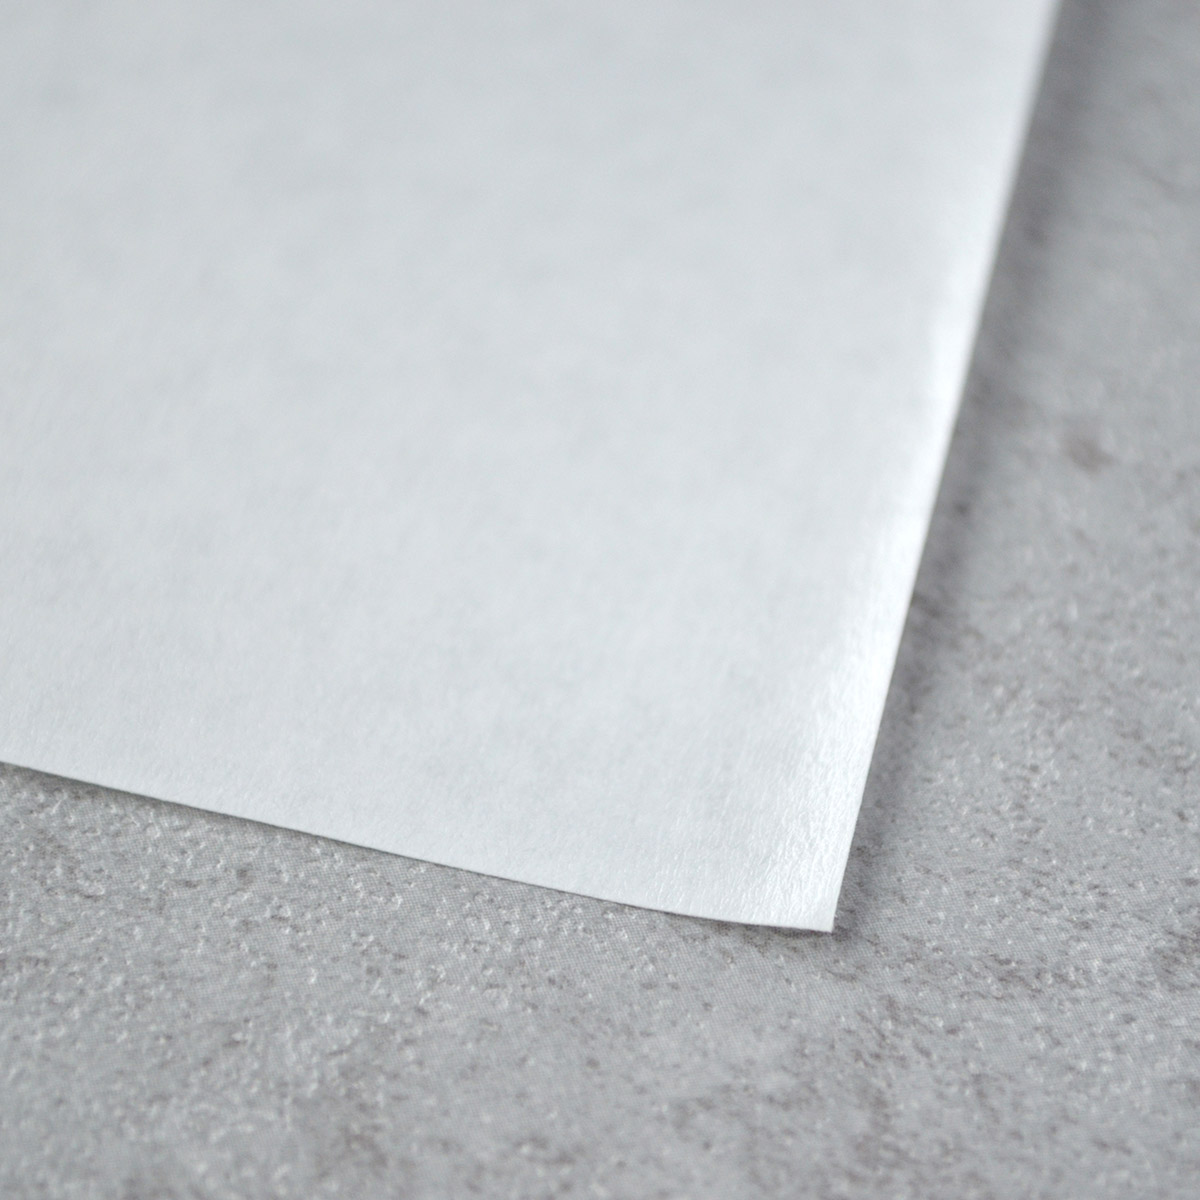 palette paper Smooth poly-coated surface finish ideal for disposable paint-mixing palettes paper weight: 41 lbs contains one 9 x 12 palette pad with forty sheets of palette papers.